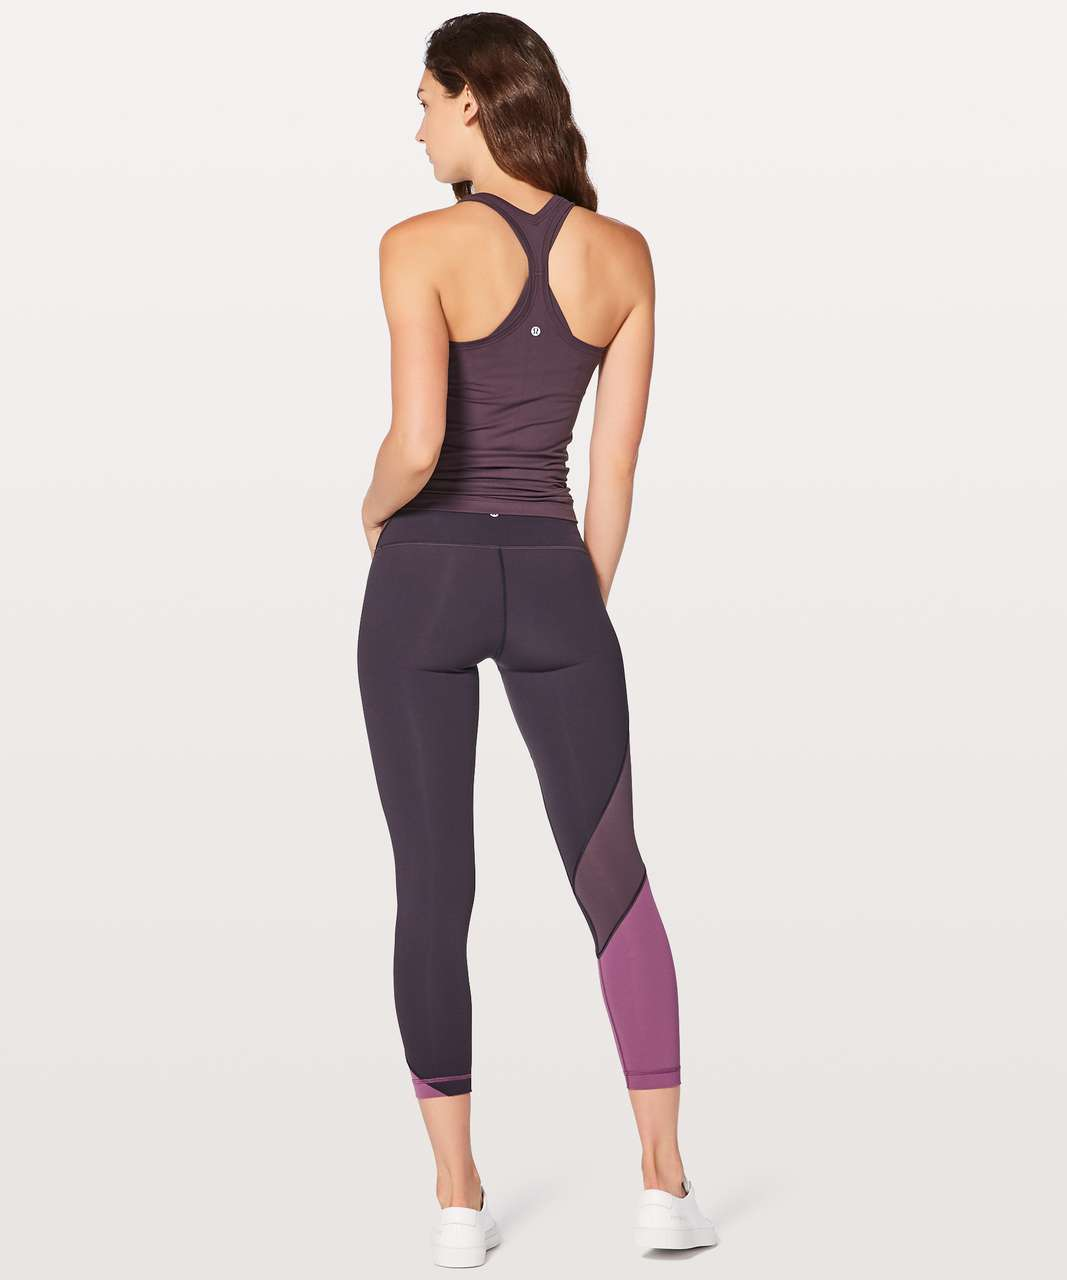 "Lululemon Wunder Under Hi-Rise 7/8 Tight (Special Edition) 25"" - Black Currant / Boysenberry / Dark Mystic"